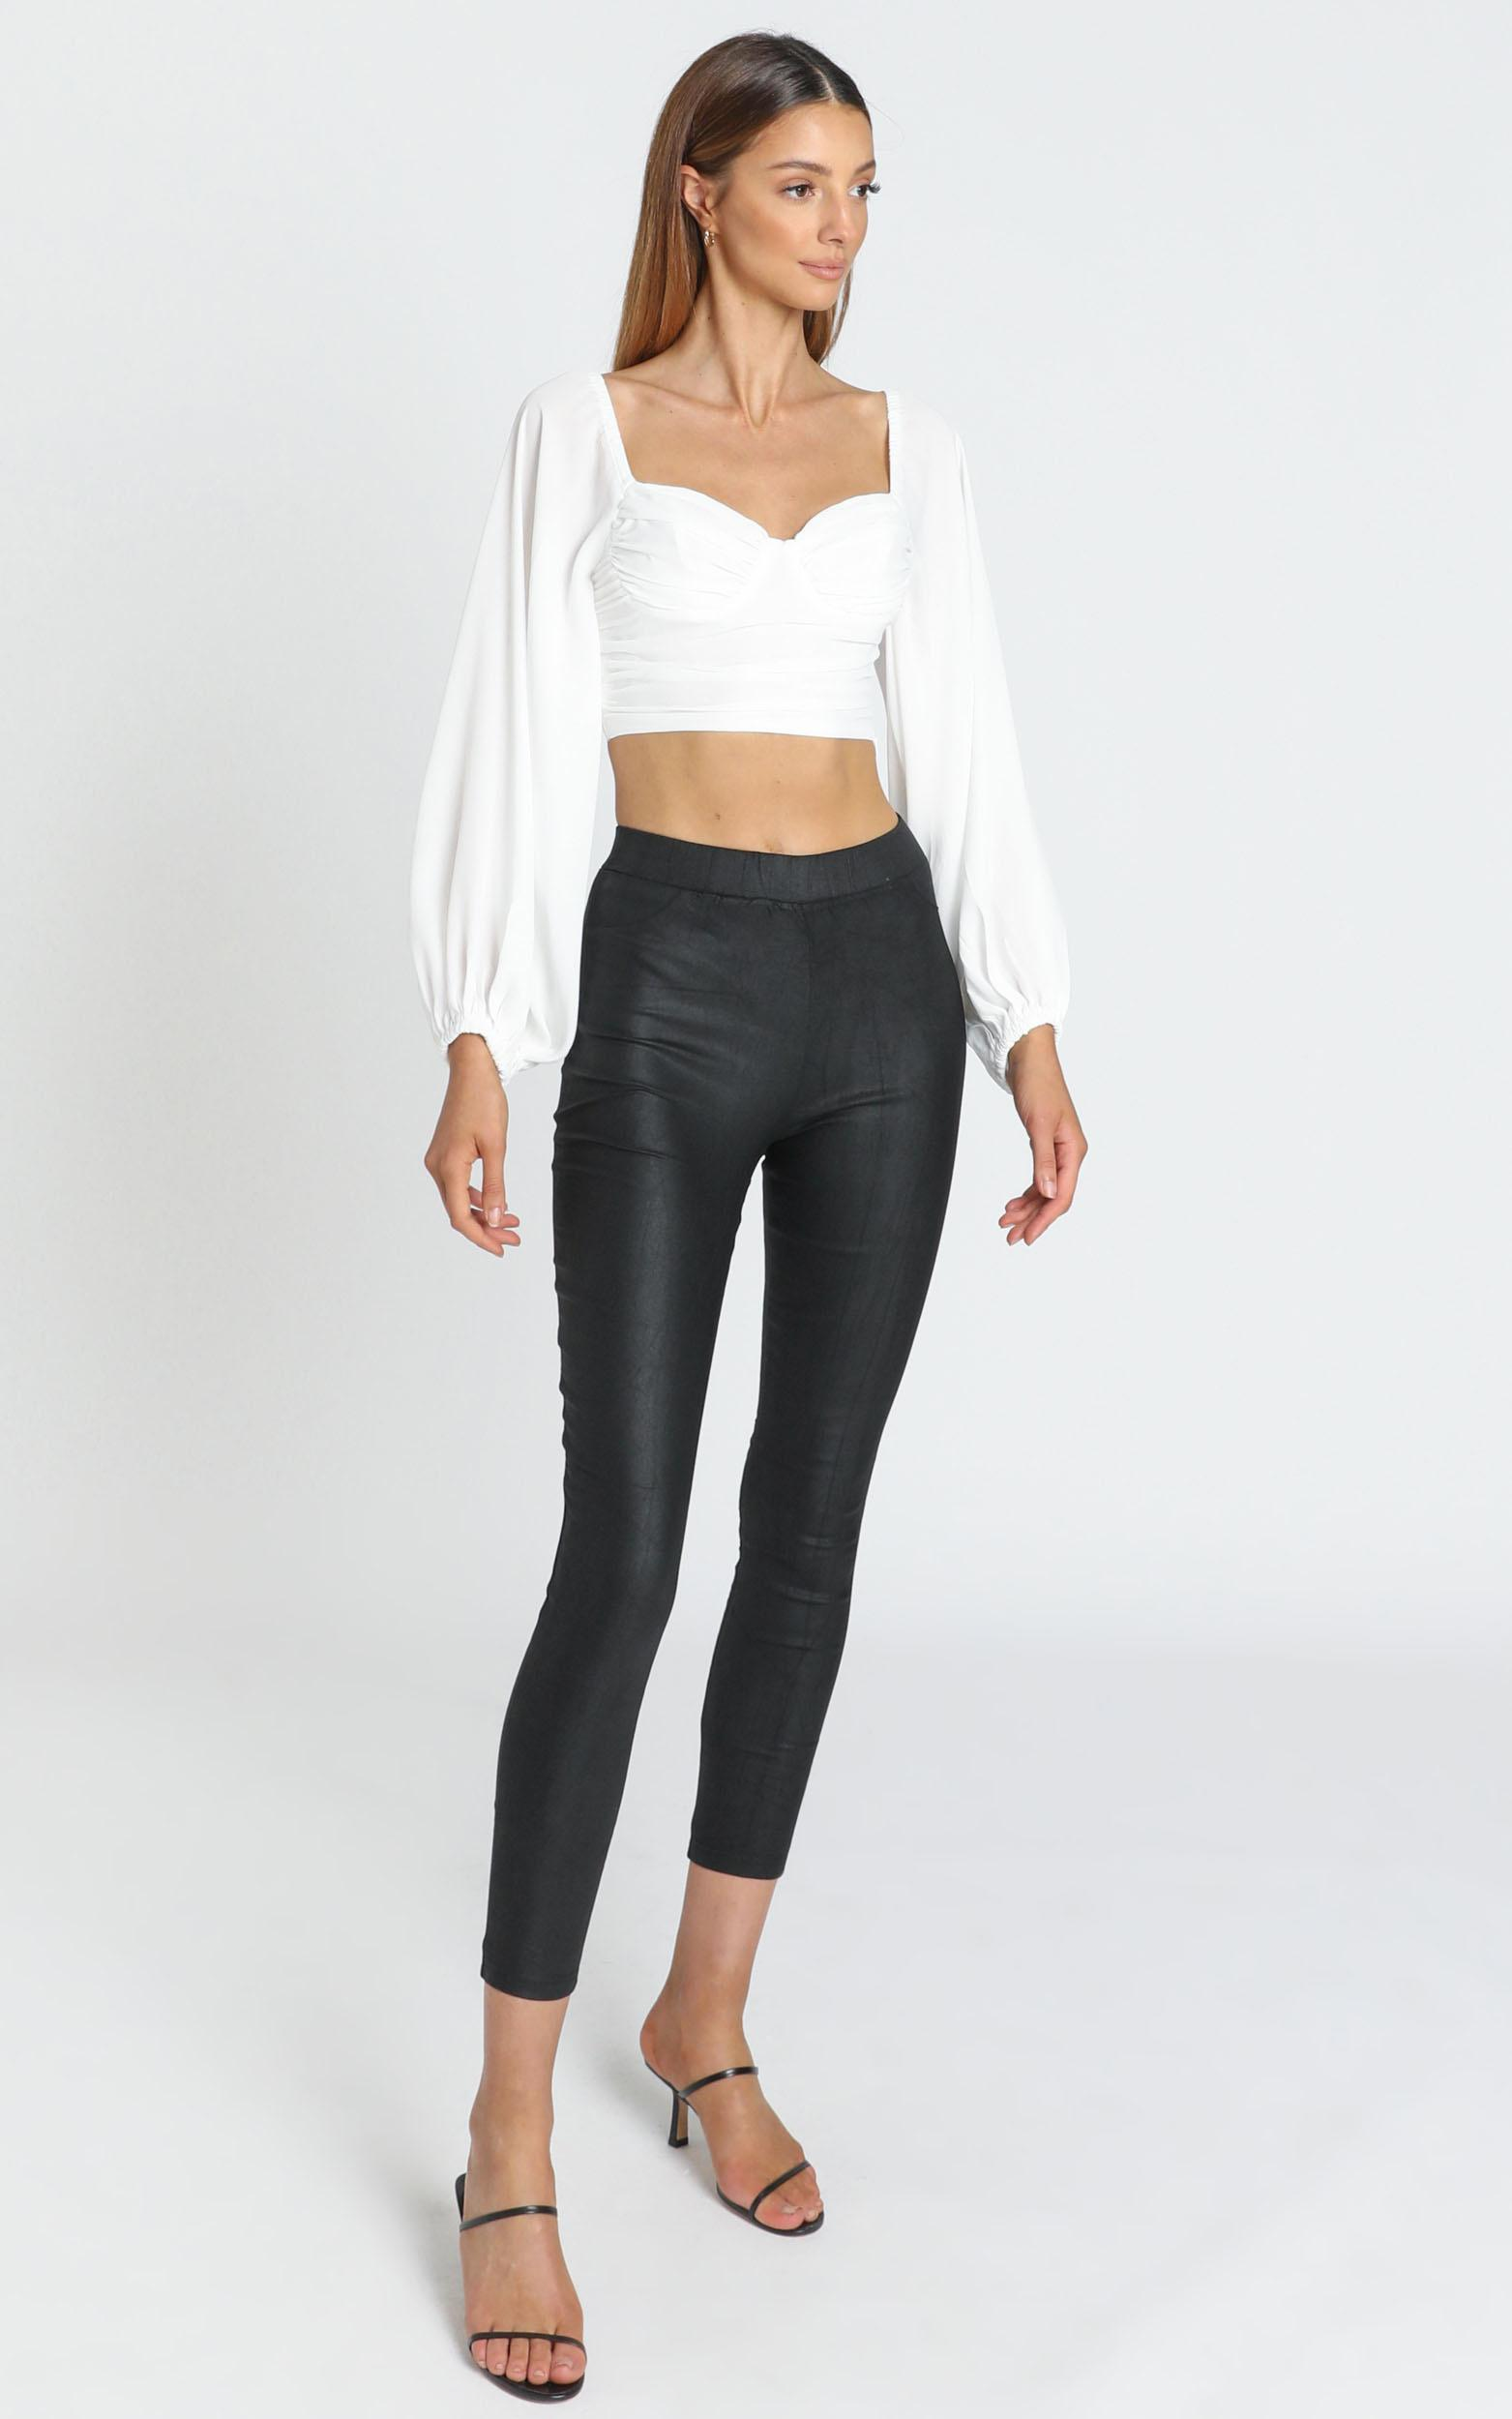 Fallon Top in White - 6 (XS), White, hi-res image number null